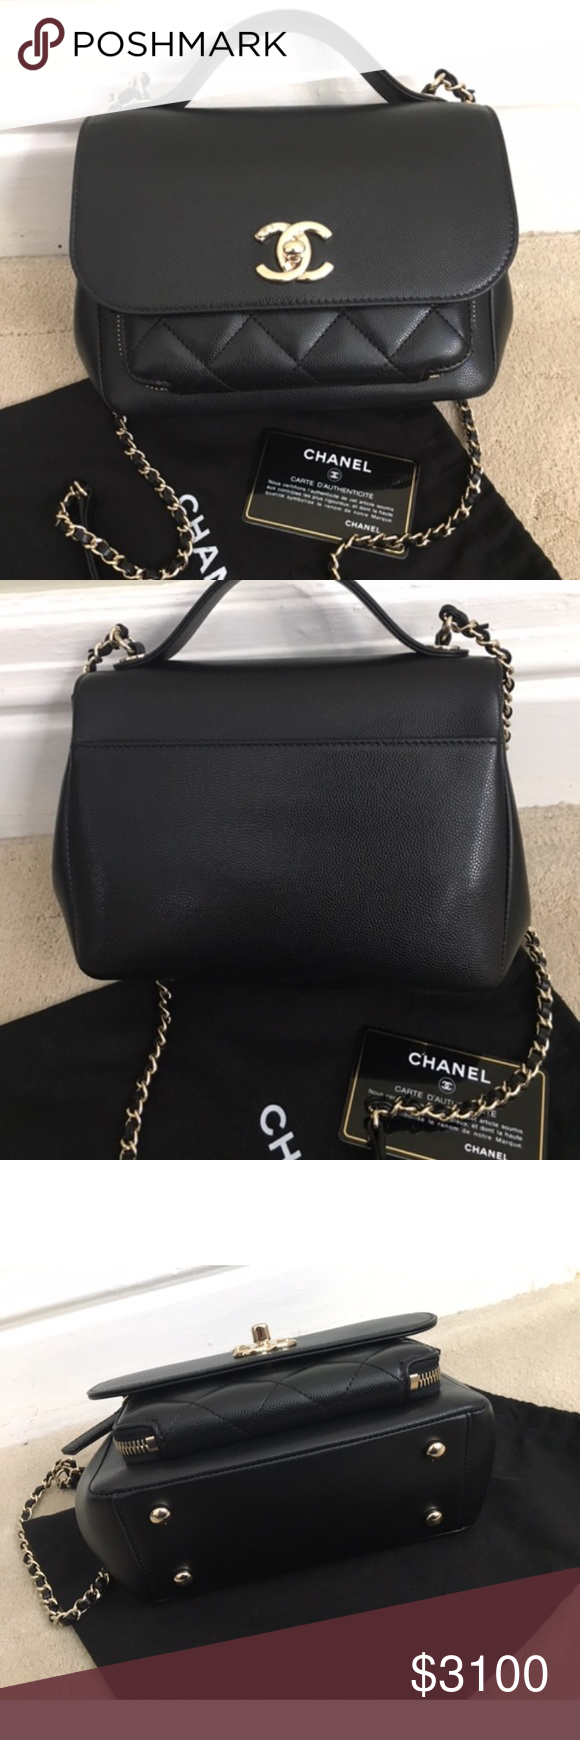 cbbb3f74270ca9 Authentic Chanel small black business affinity Up for sale is the Chanel  Business Affinity tote in